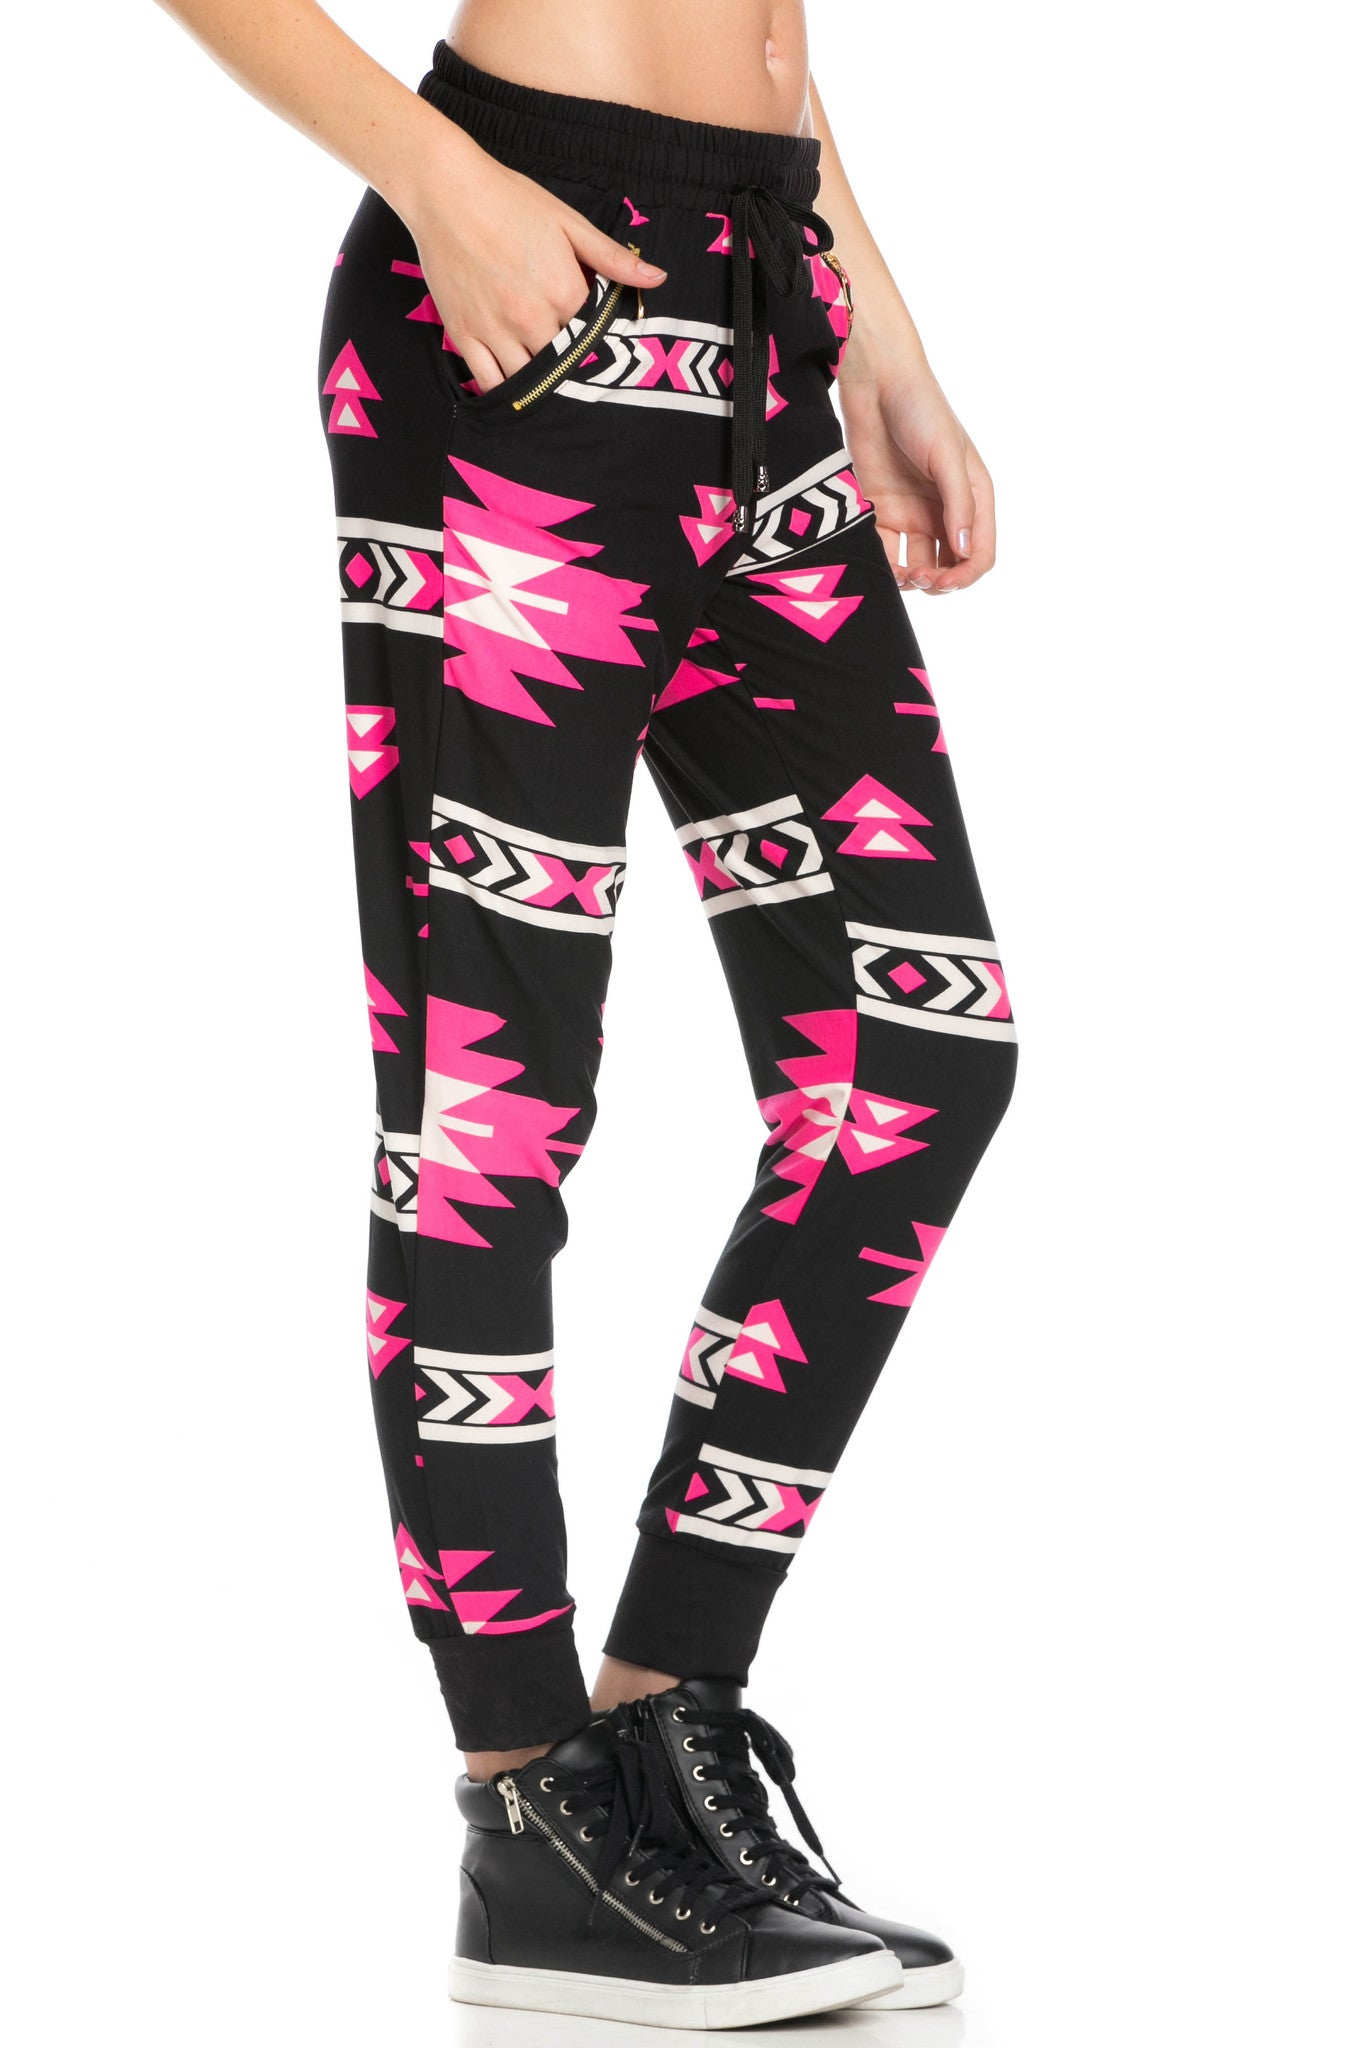 Tribal Pattern Jogger Pants Black Pink - Jogger Pants - My Yuccie - 5